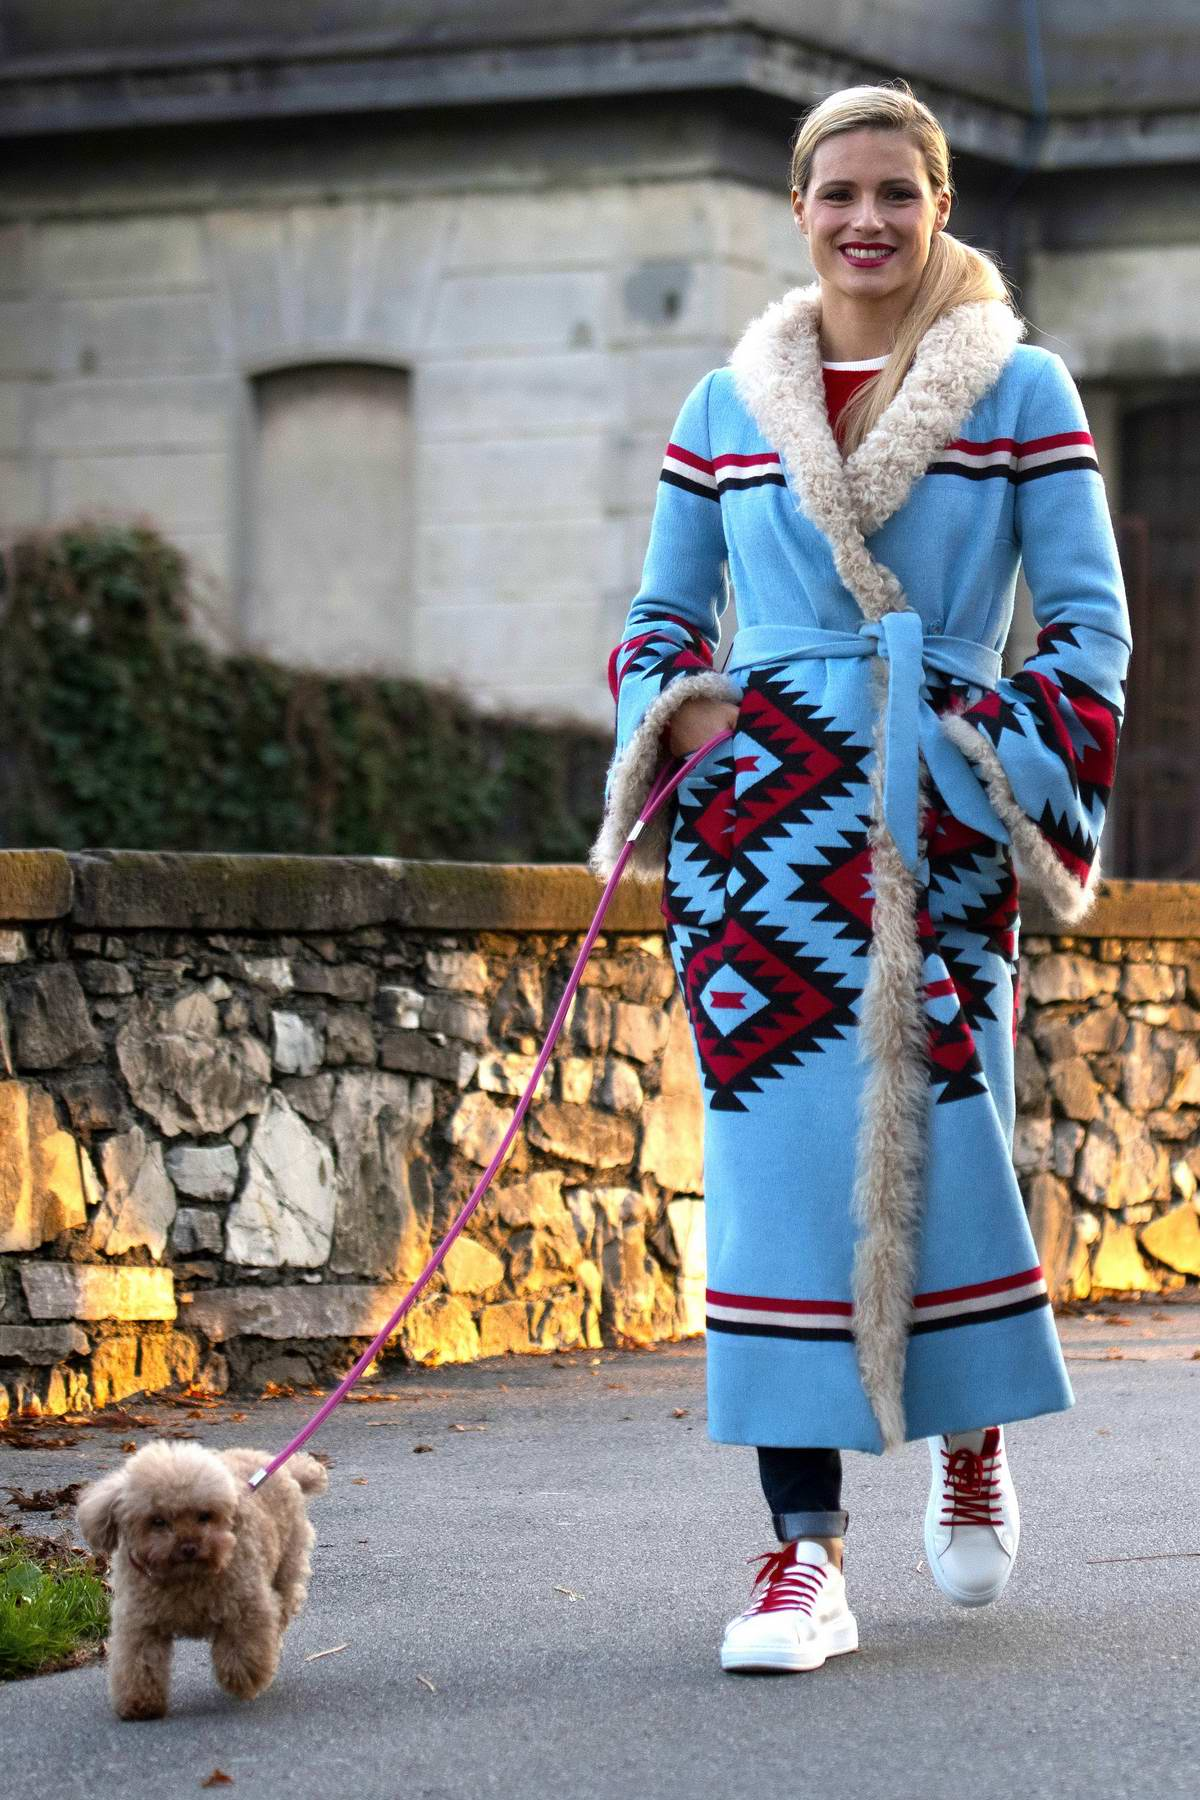 Michelle Hunziker takes her daughter Sole to the park with their dog in Milan, Italy